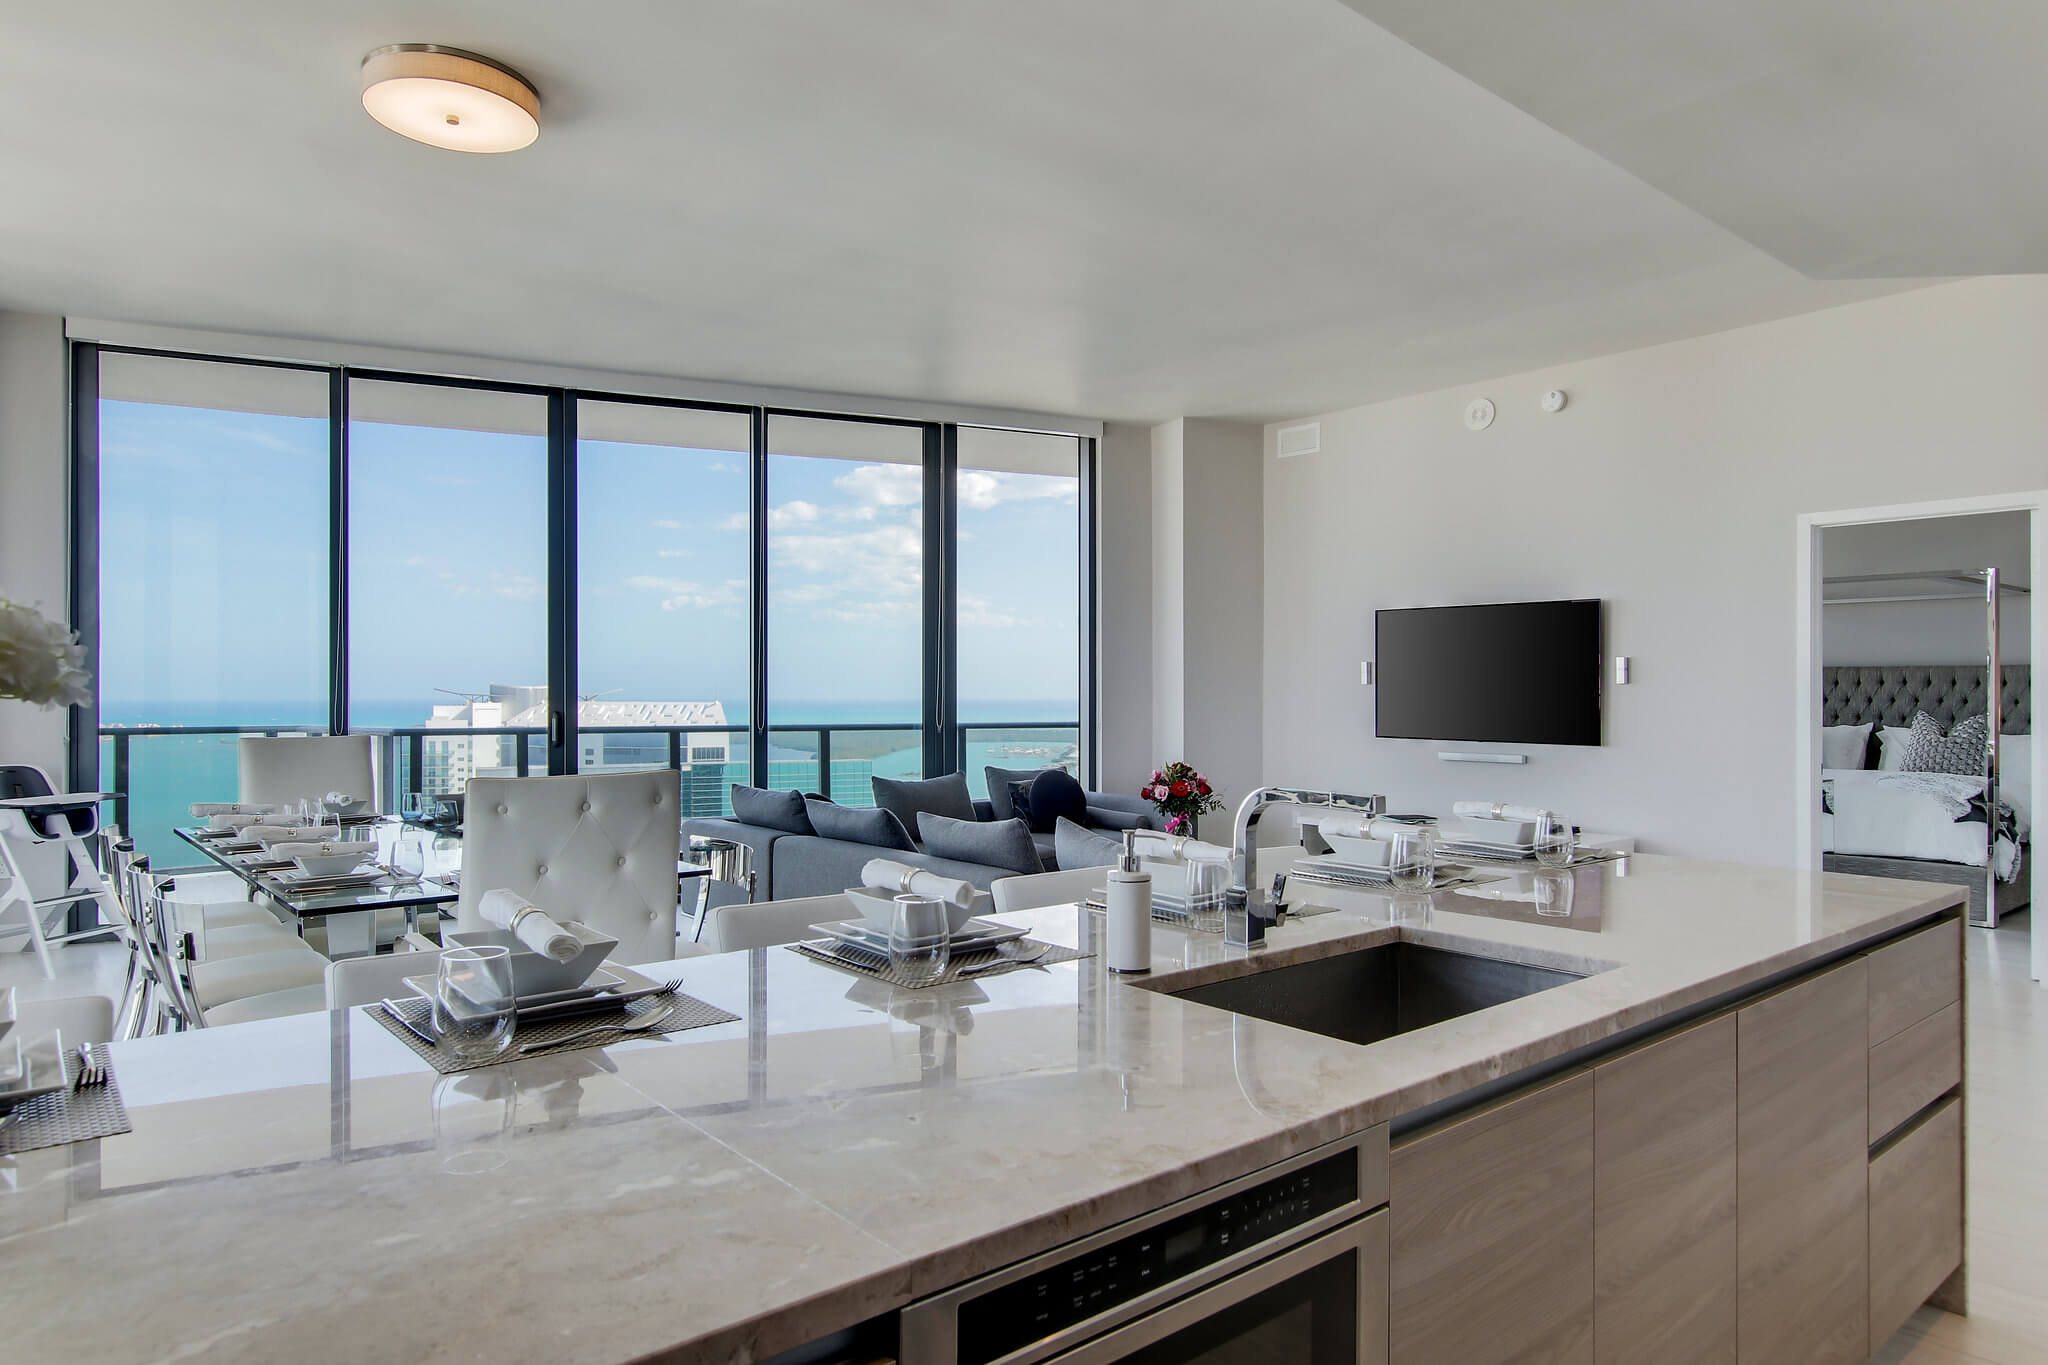 09__sls_brickell_photo_by_MiamiRealEstatePhotographers.com